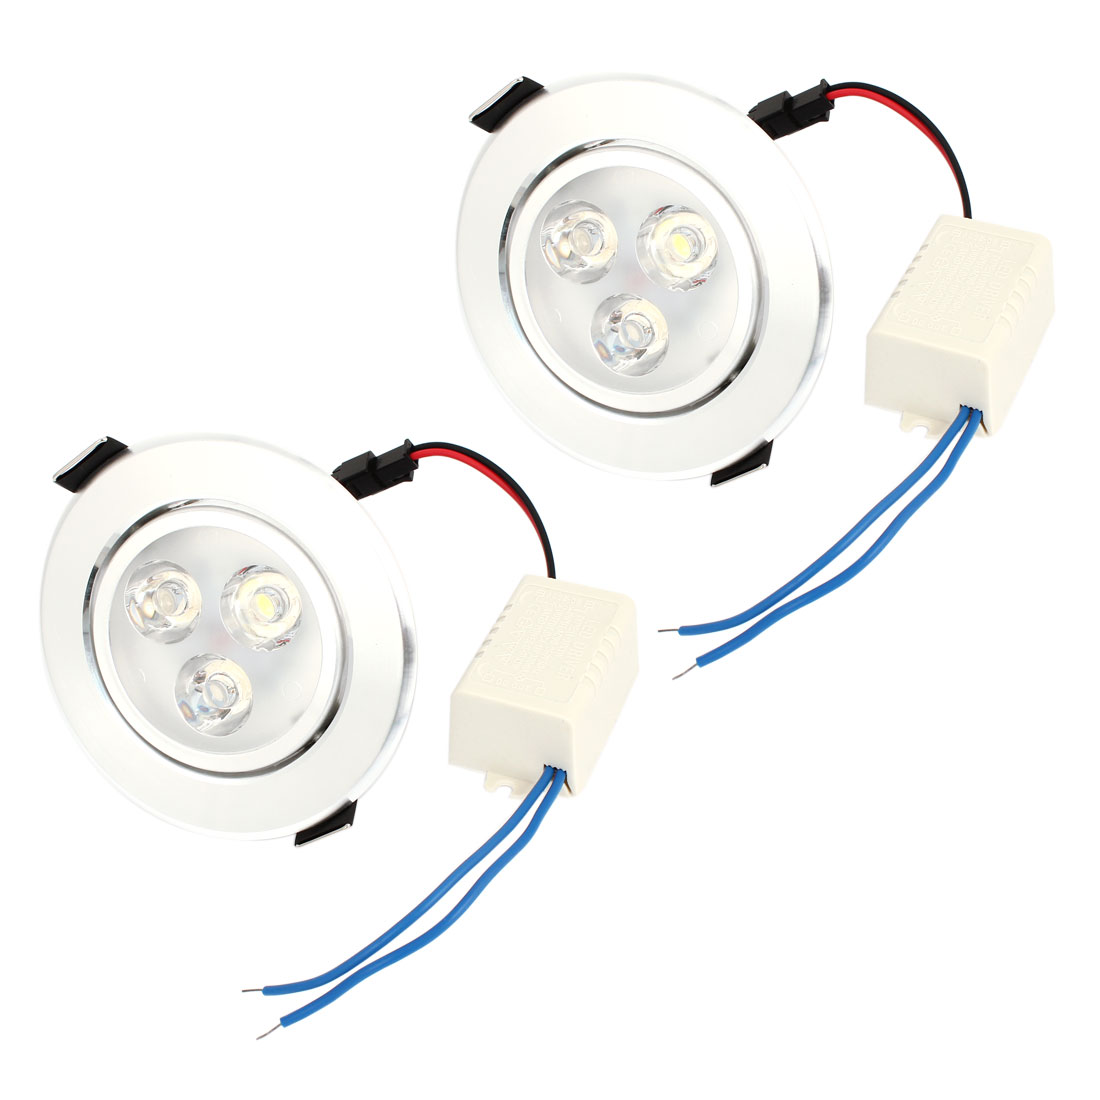 2 Pcs 3W 3 LEDs Recessed Ceiling Downlight Pure White Energy Saving Spot Lamp